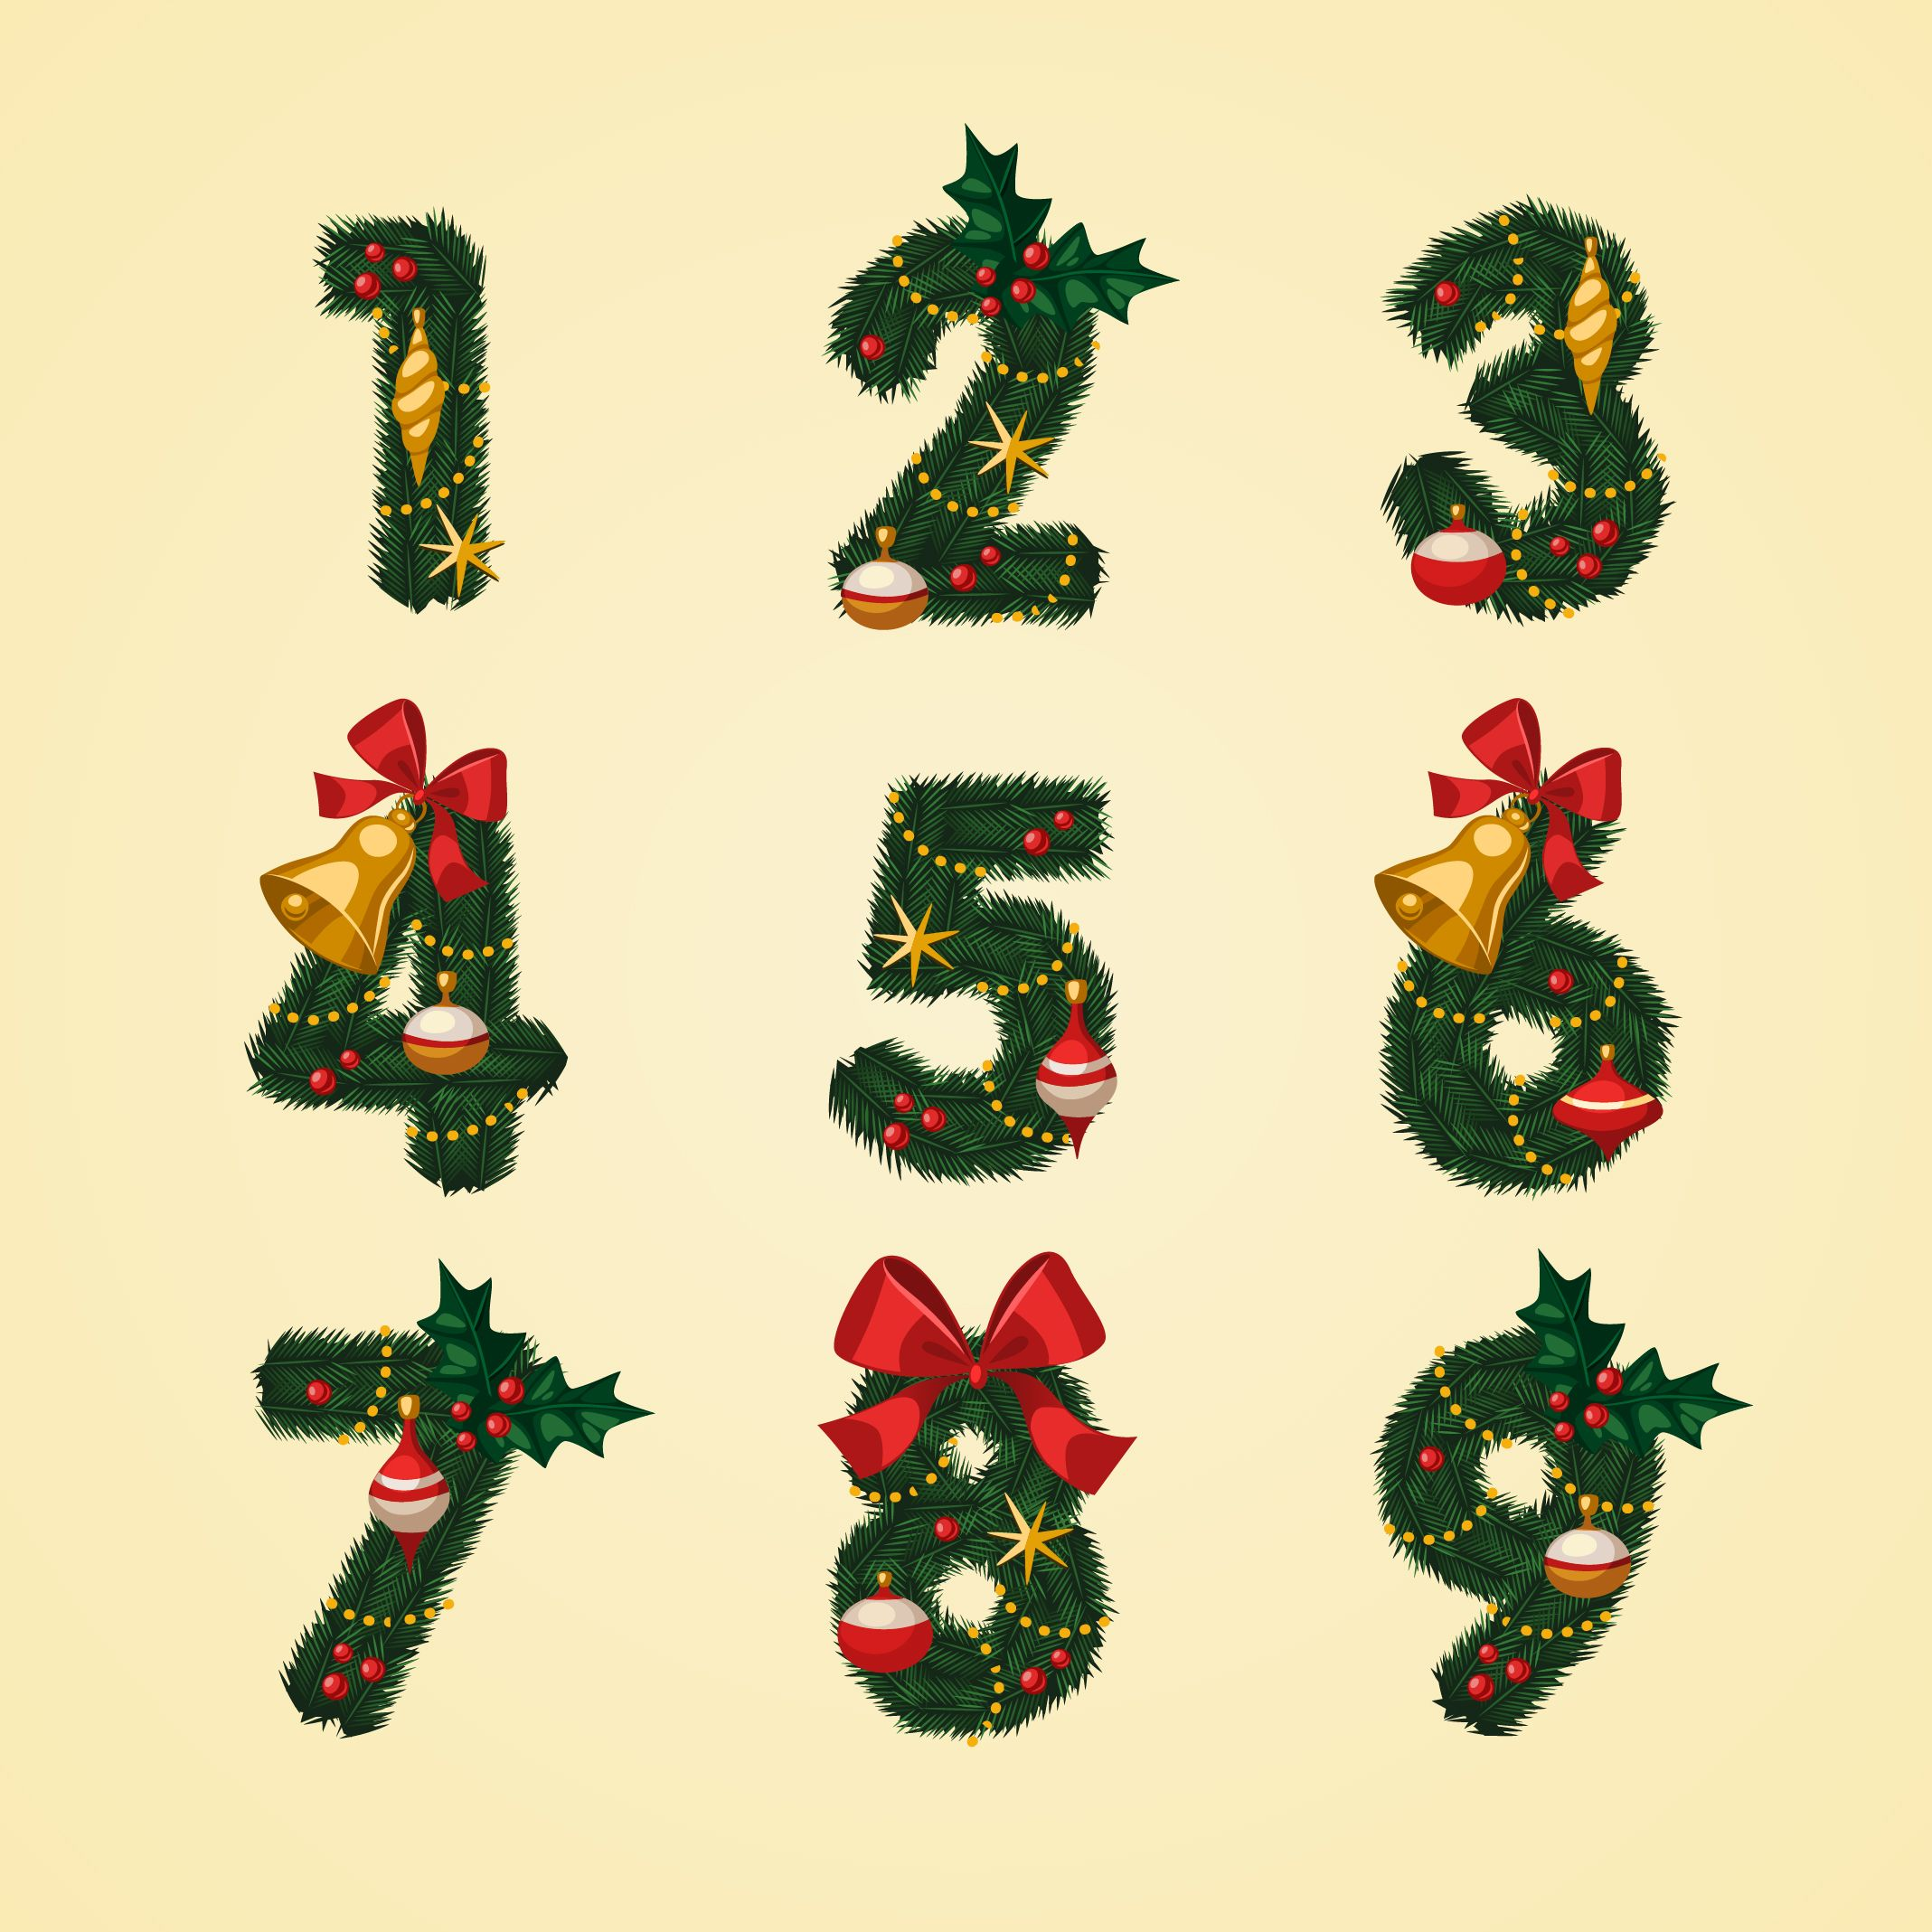 Download Christmas themed alphabets and numbers. #Christmas.